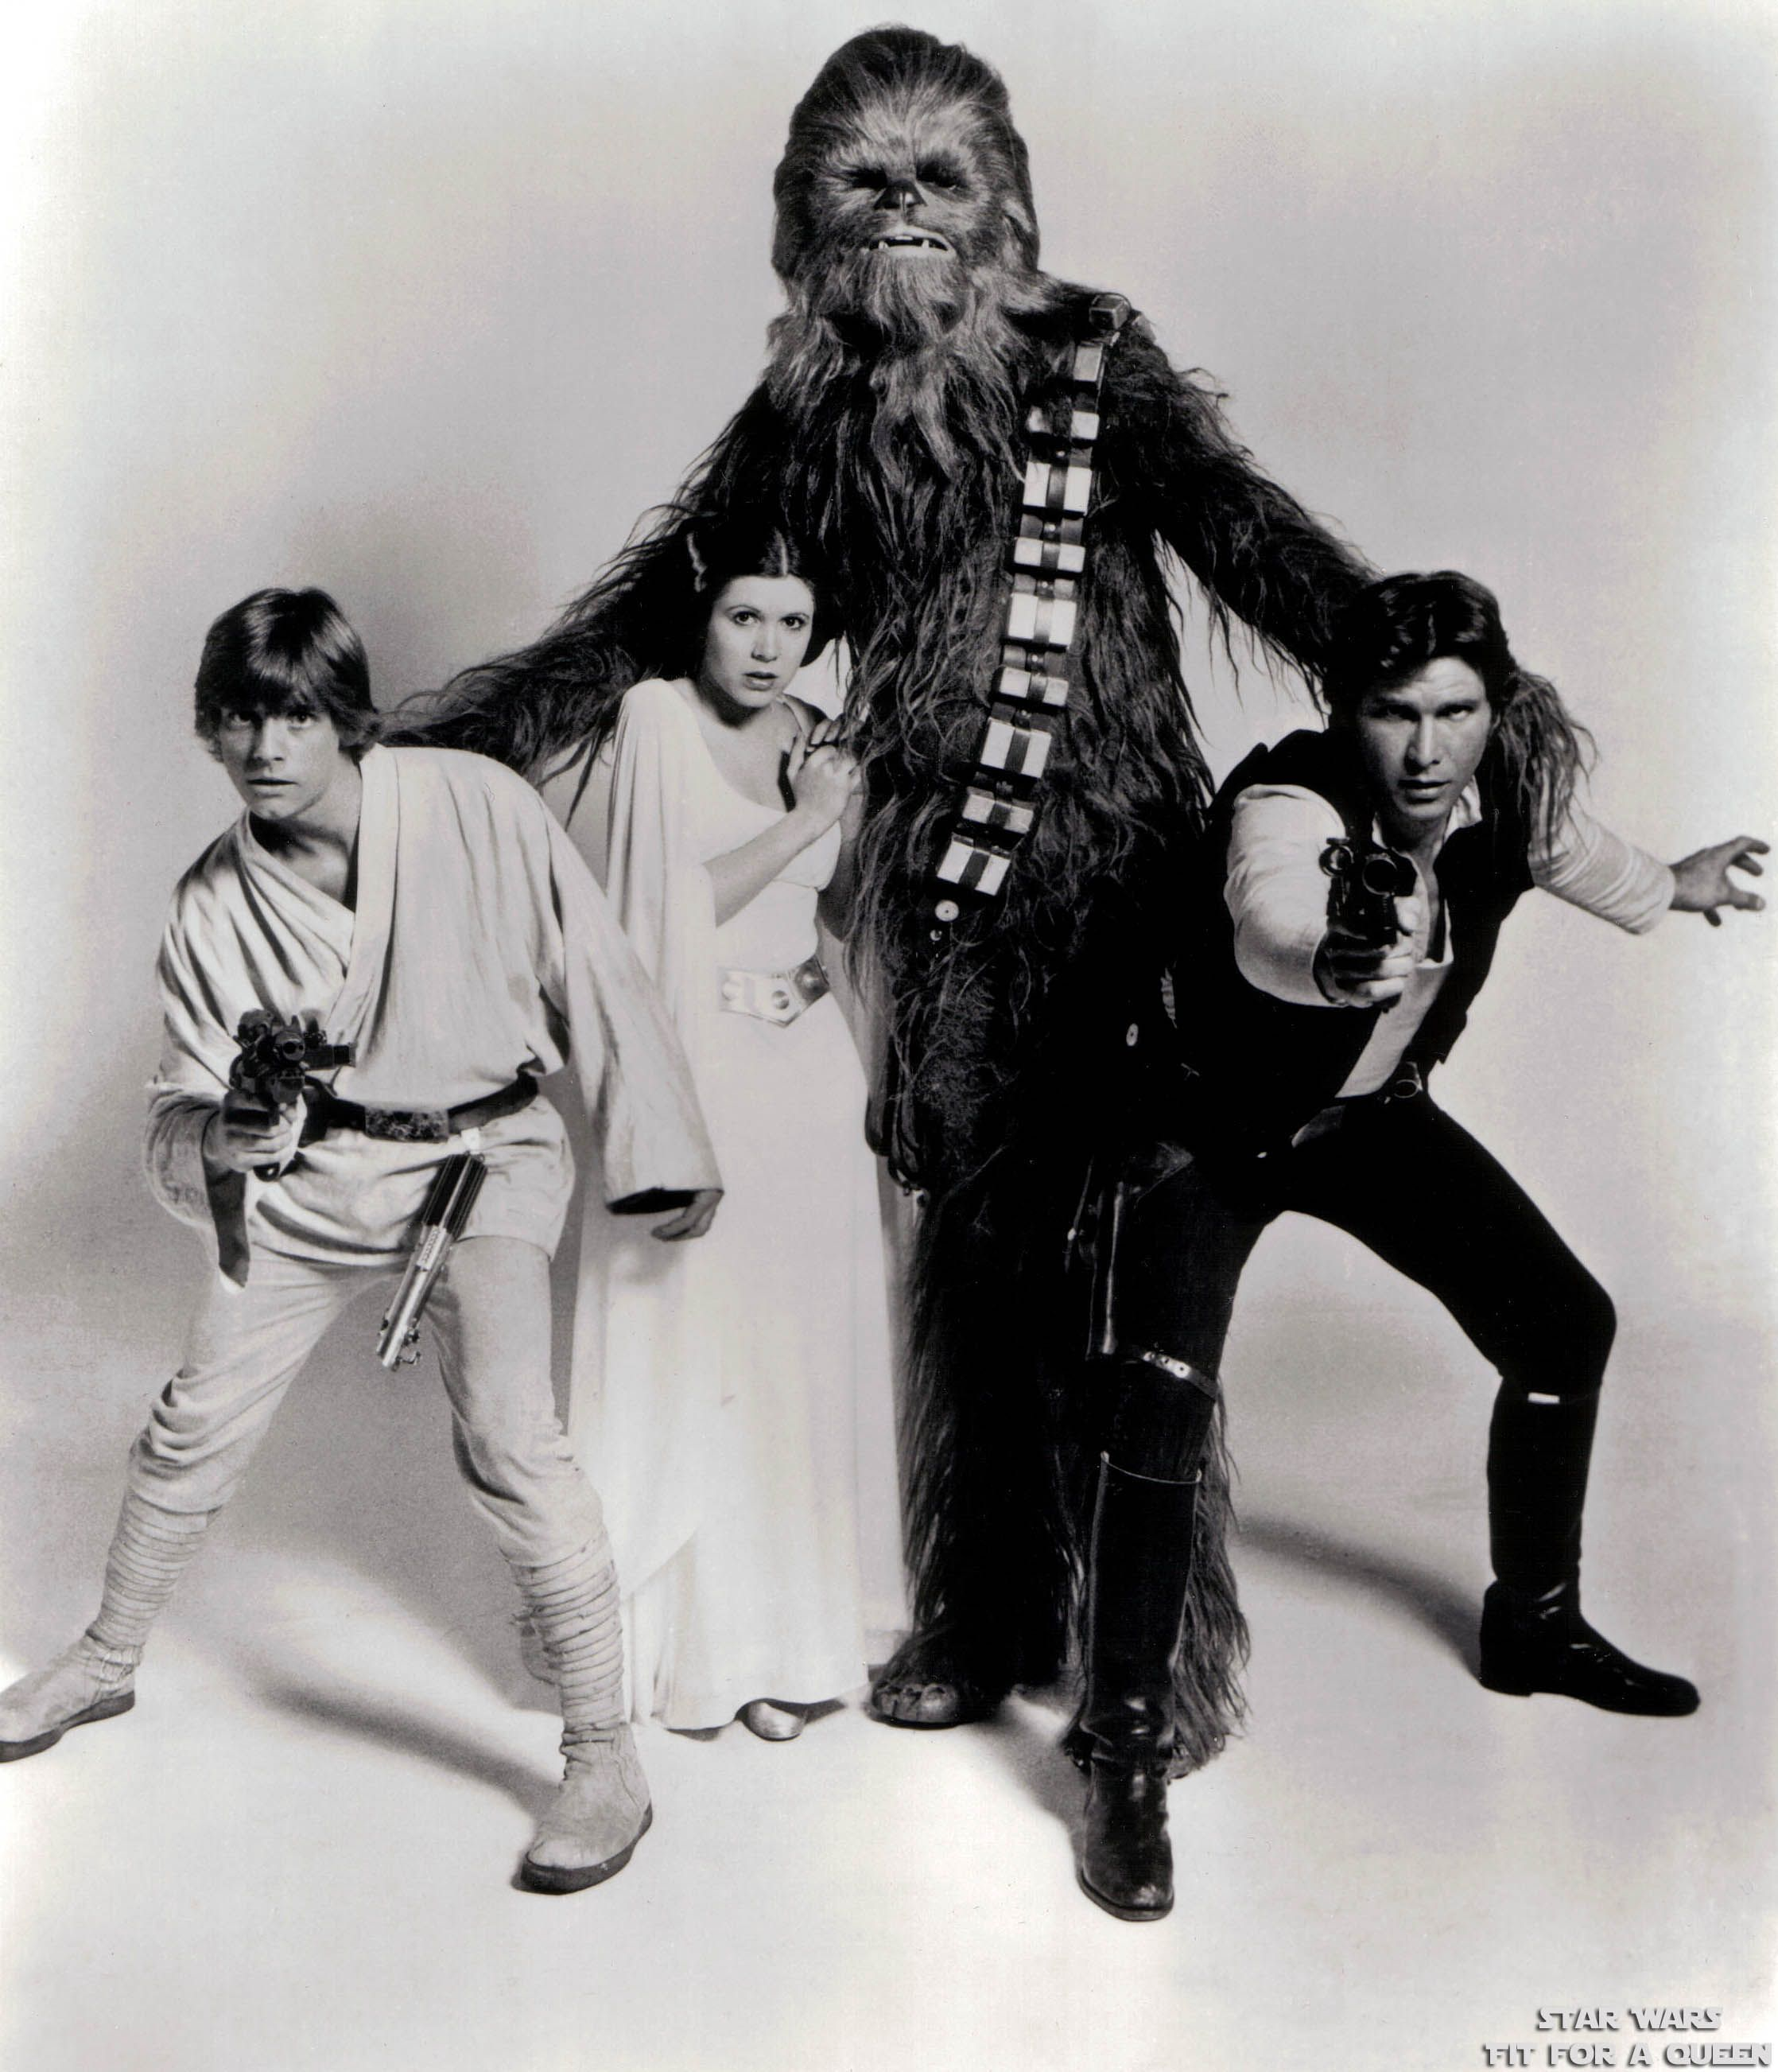 Group Star Wars Episode Iv A New Hope Star Wars Cast Star Wars Pictures Classic Star Wars